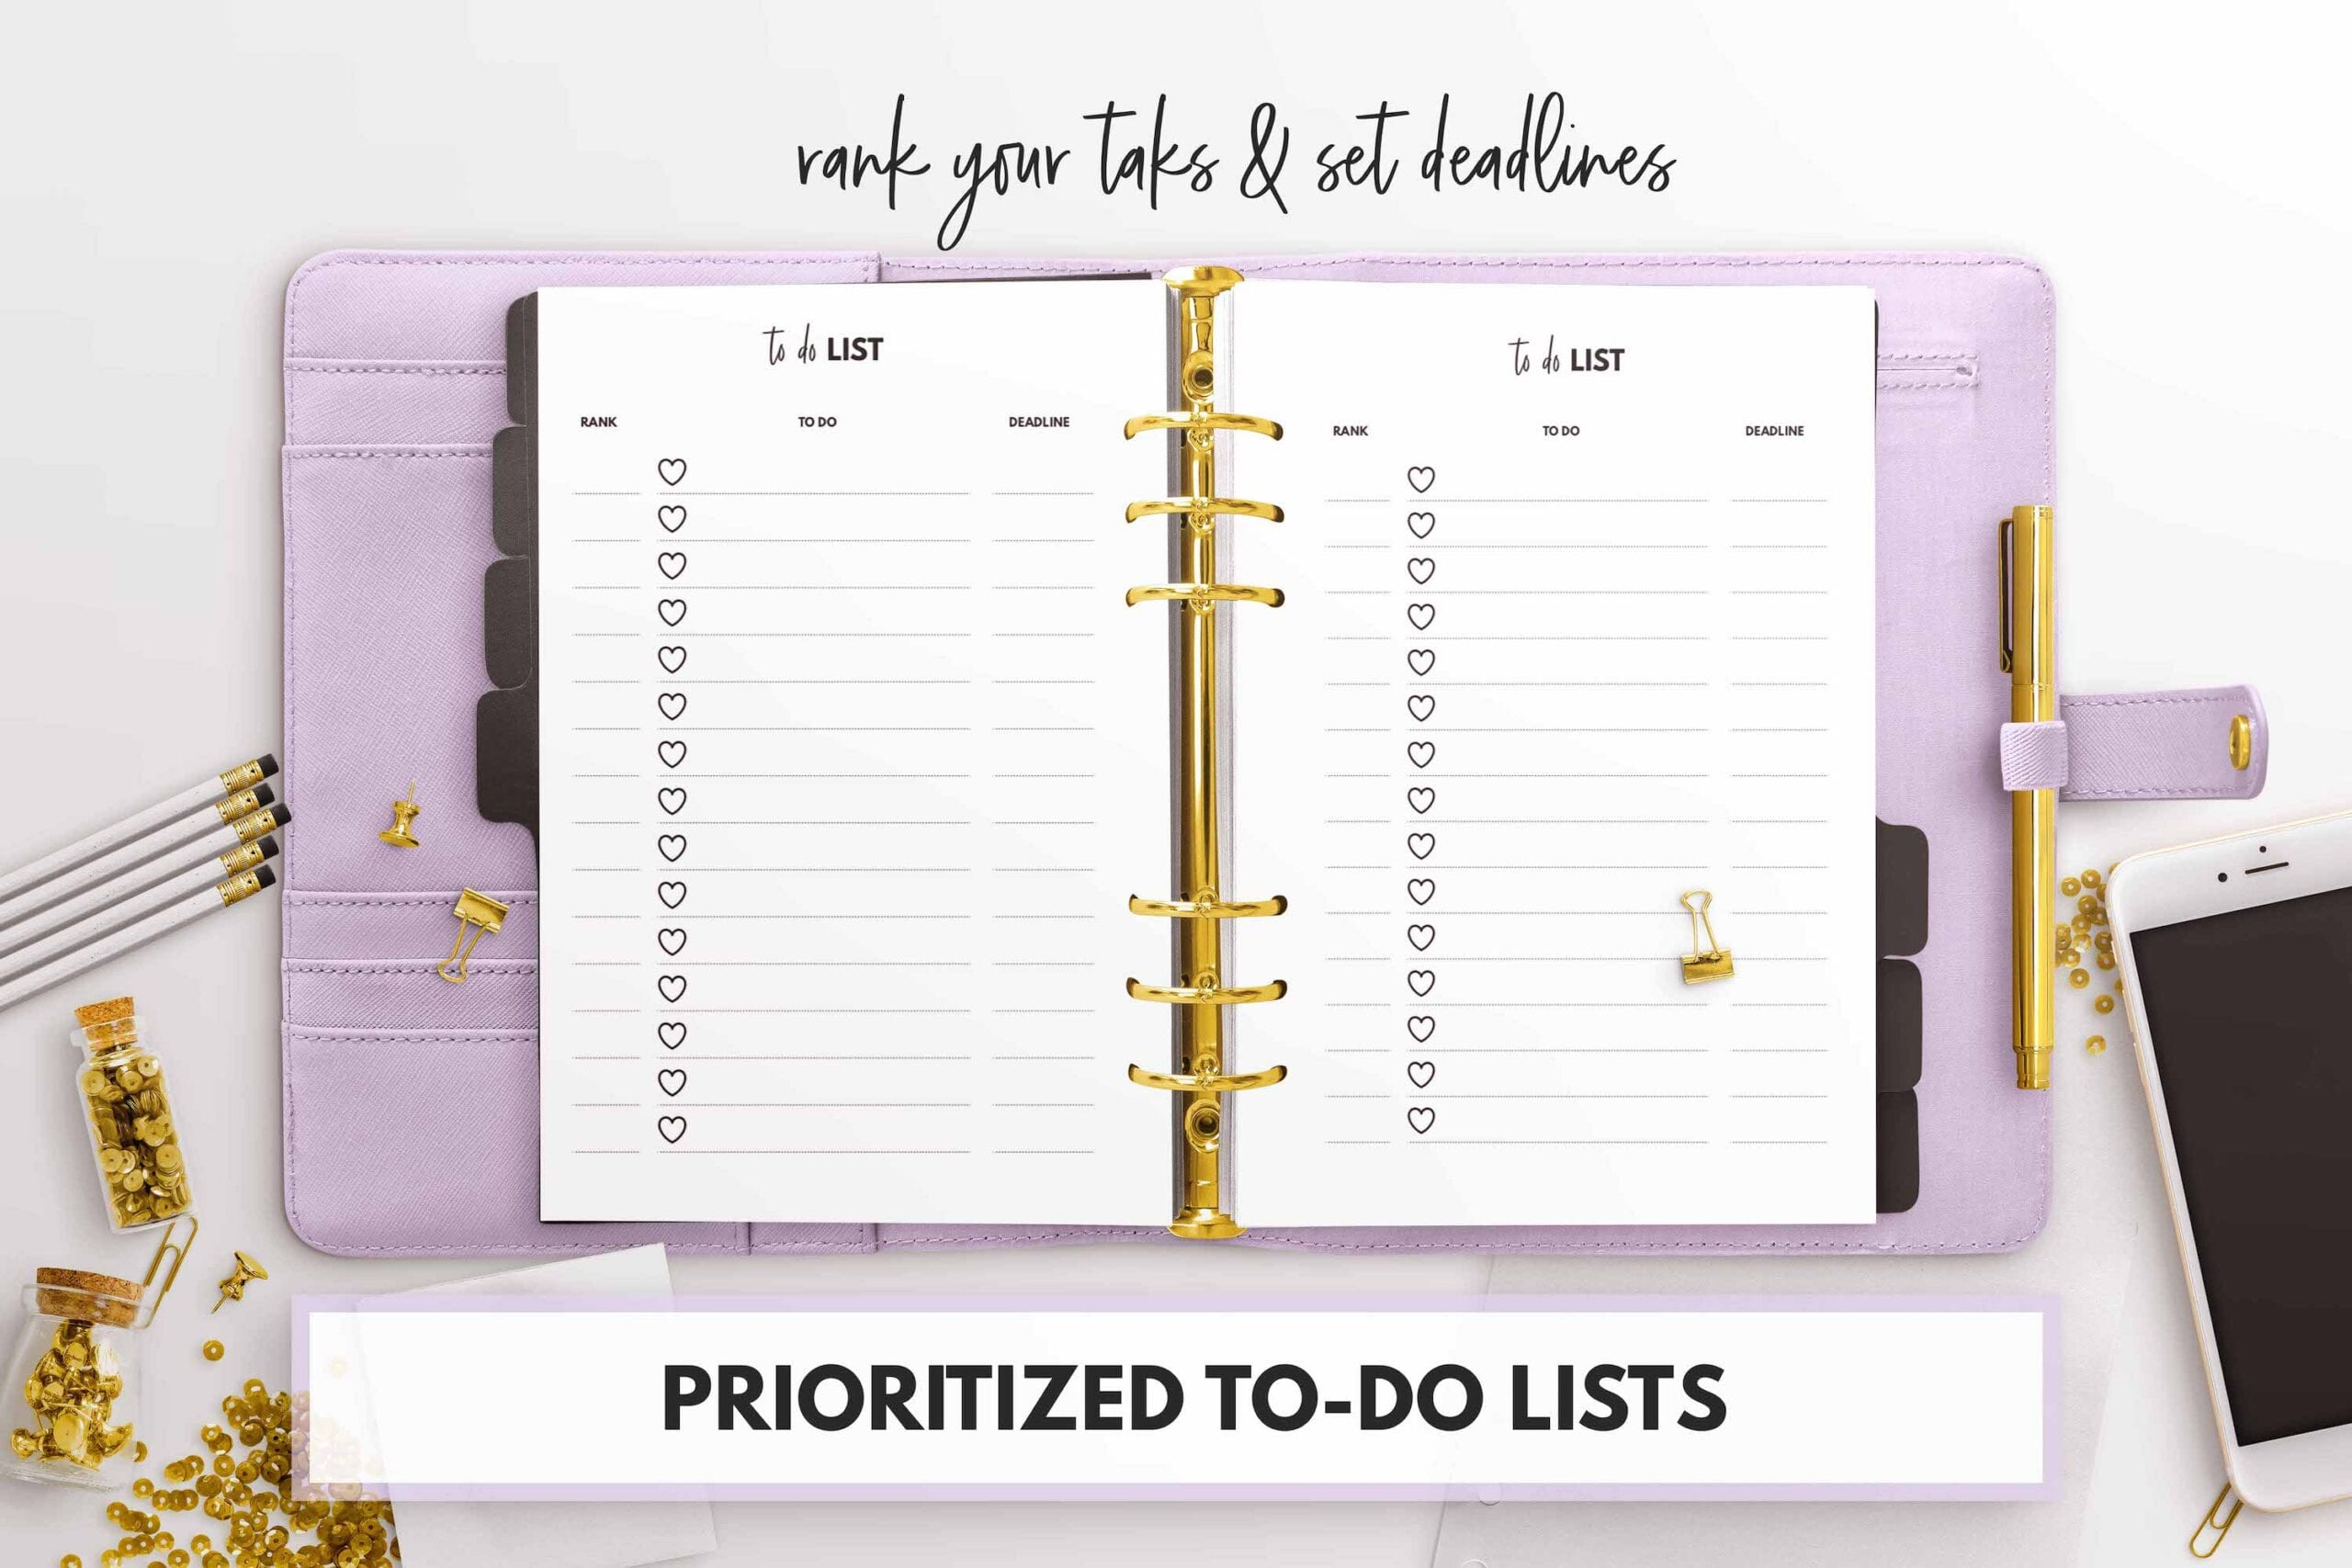 free prioritized to-do list printable